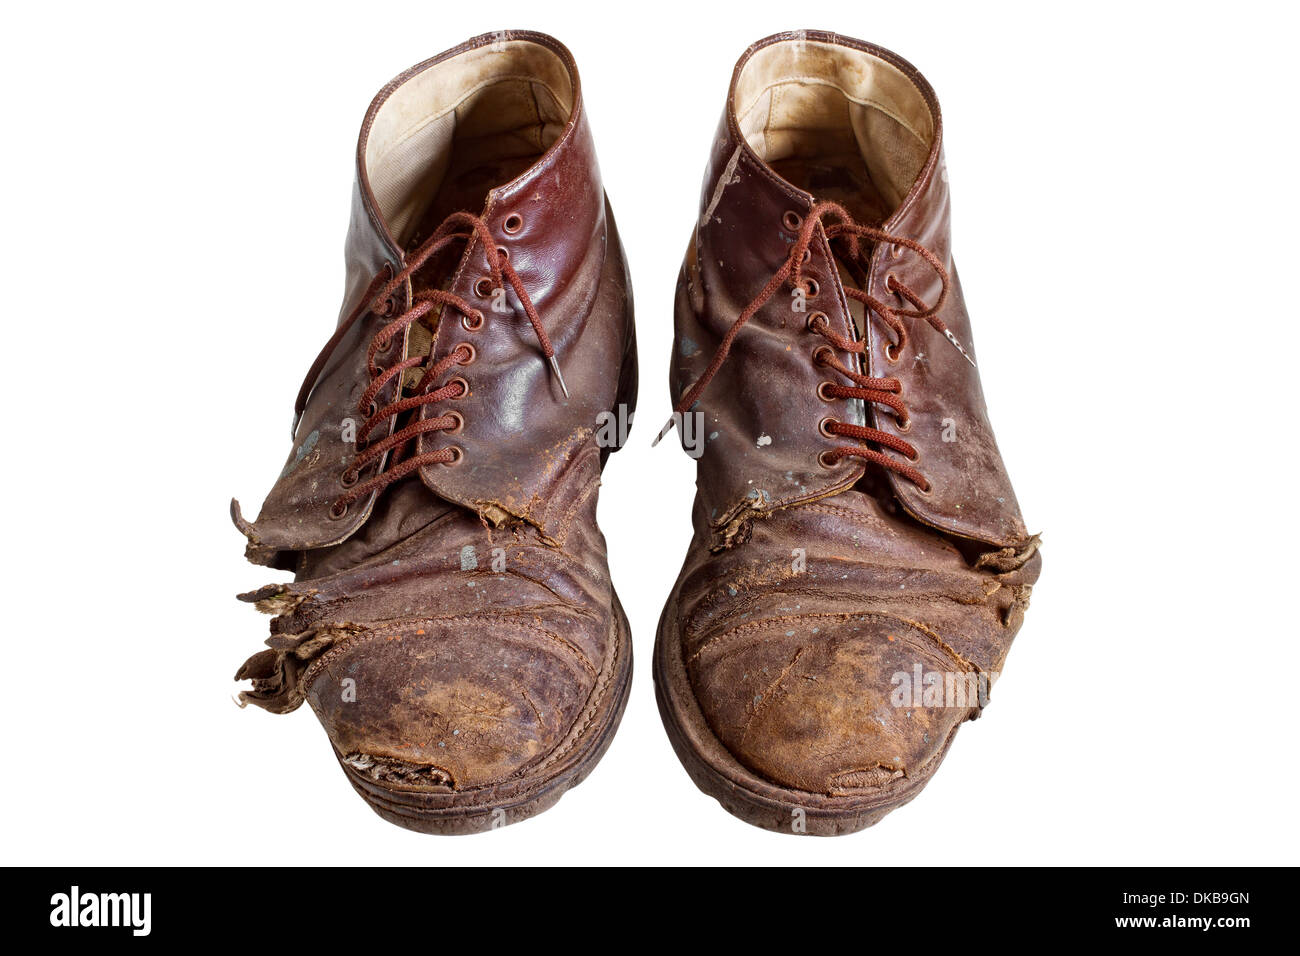 Old worn out boots, isolated on white - Stock Image